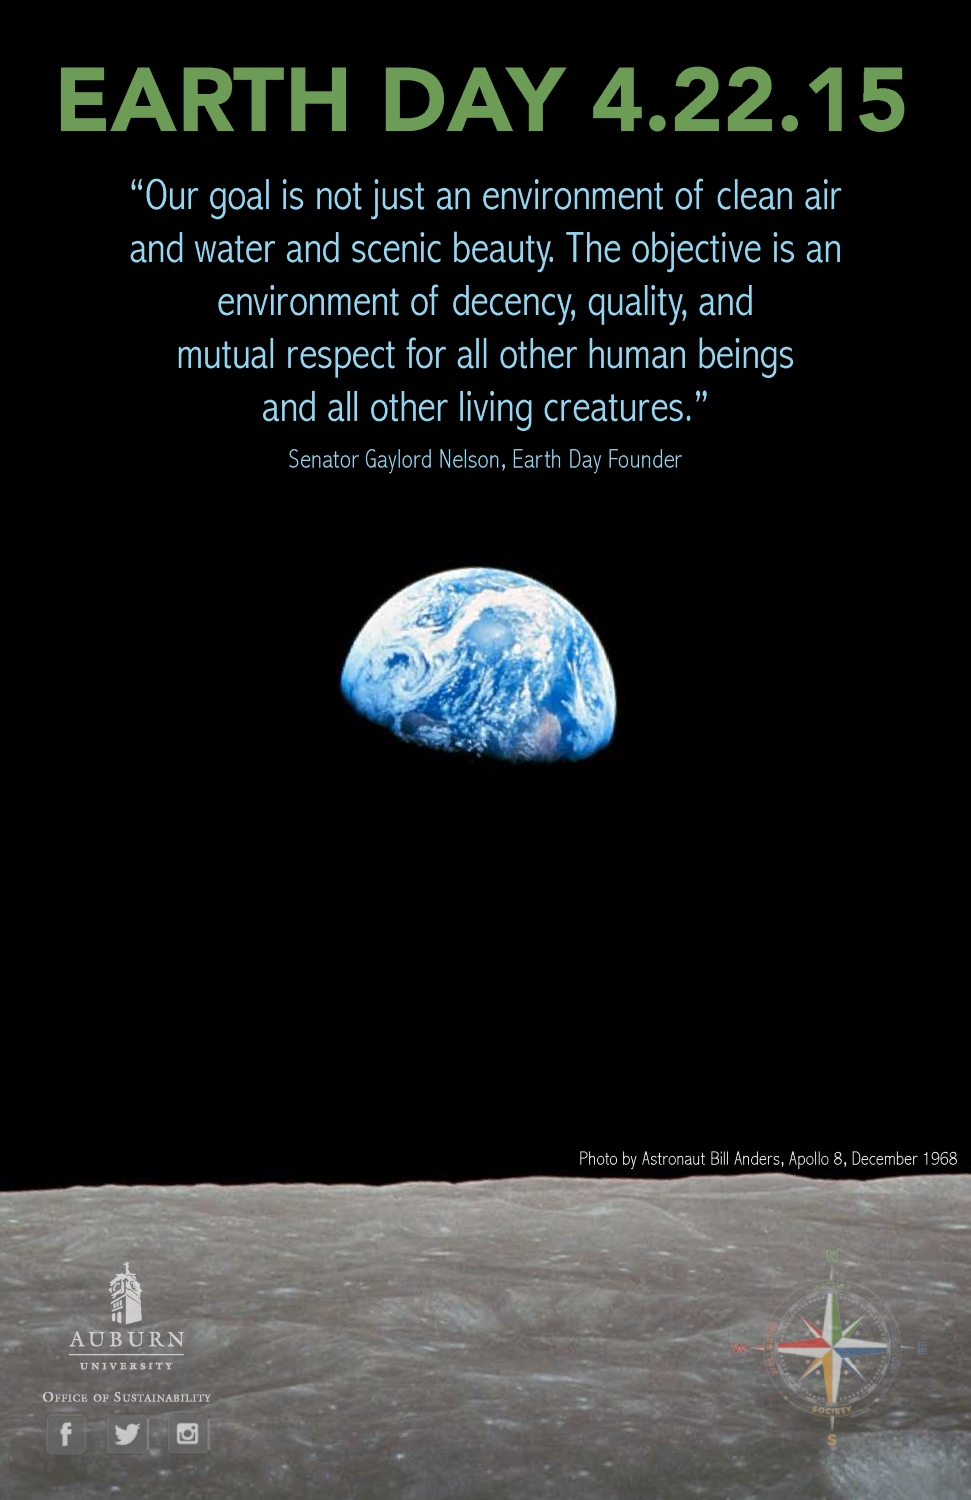 """Graphic with Gaylord Nelson quote: """"Our goal is not just an environment of clean air and water and scenic beauty. The objective is an environment of decency, quality, and mutual respect for all other human beings and all other living creatures."""""""